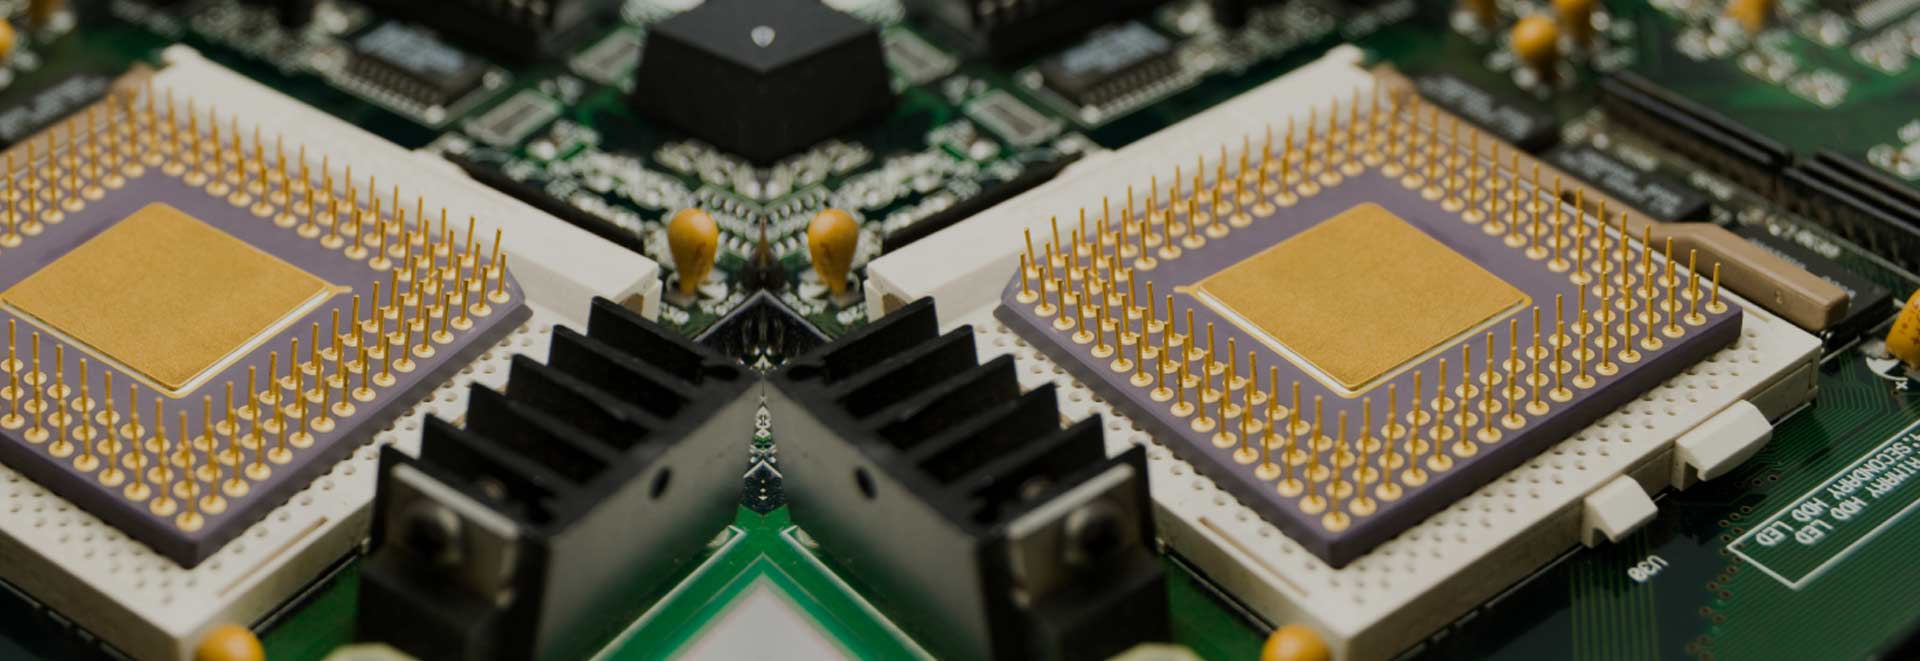 Nistec Excellence Across The Board Electronic Circuitry Is Custom Designed And Manufactured By Us Semiconductor